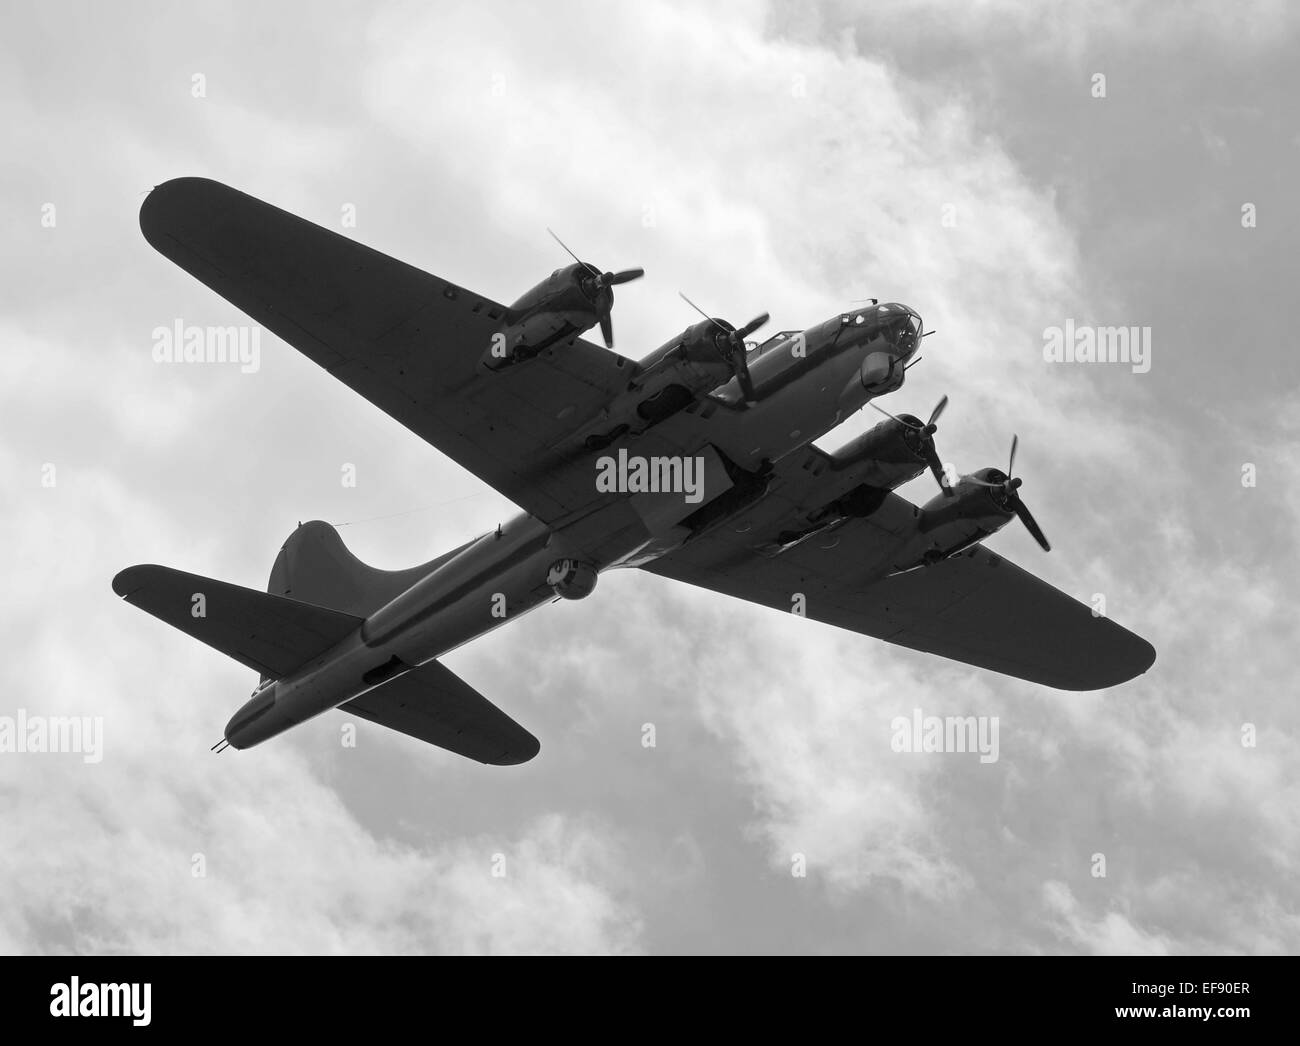 World War II era heavy bomber on a mission B-17 Flying fortress - Stock Image